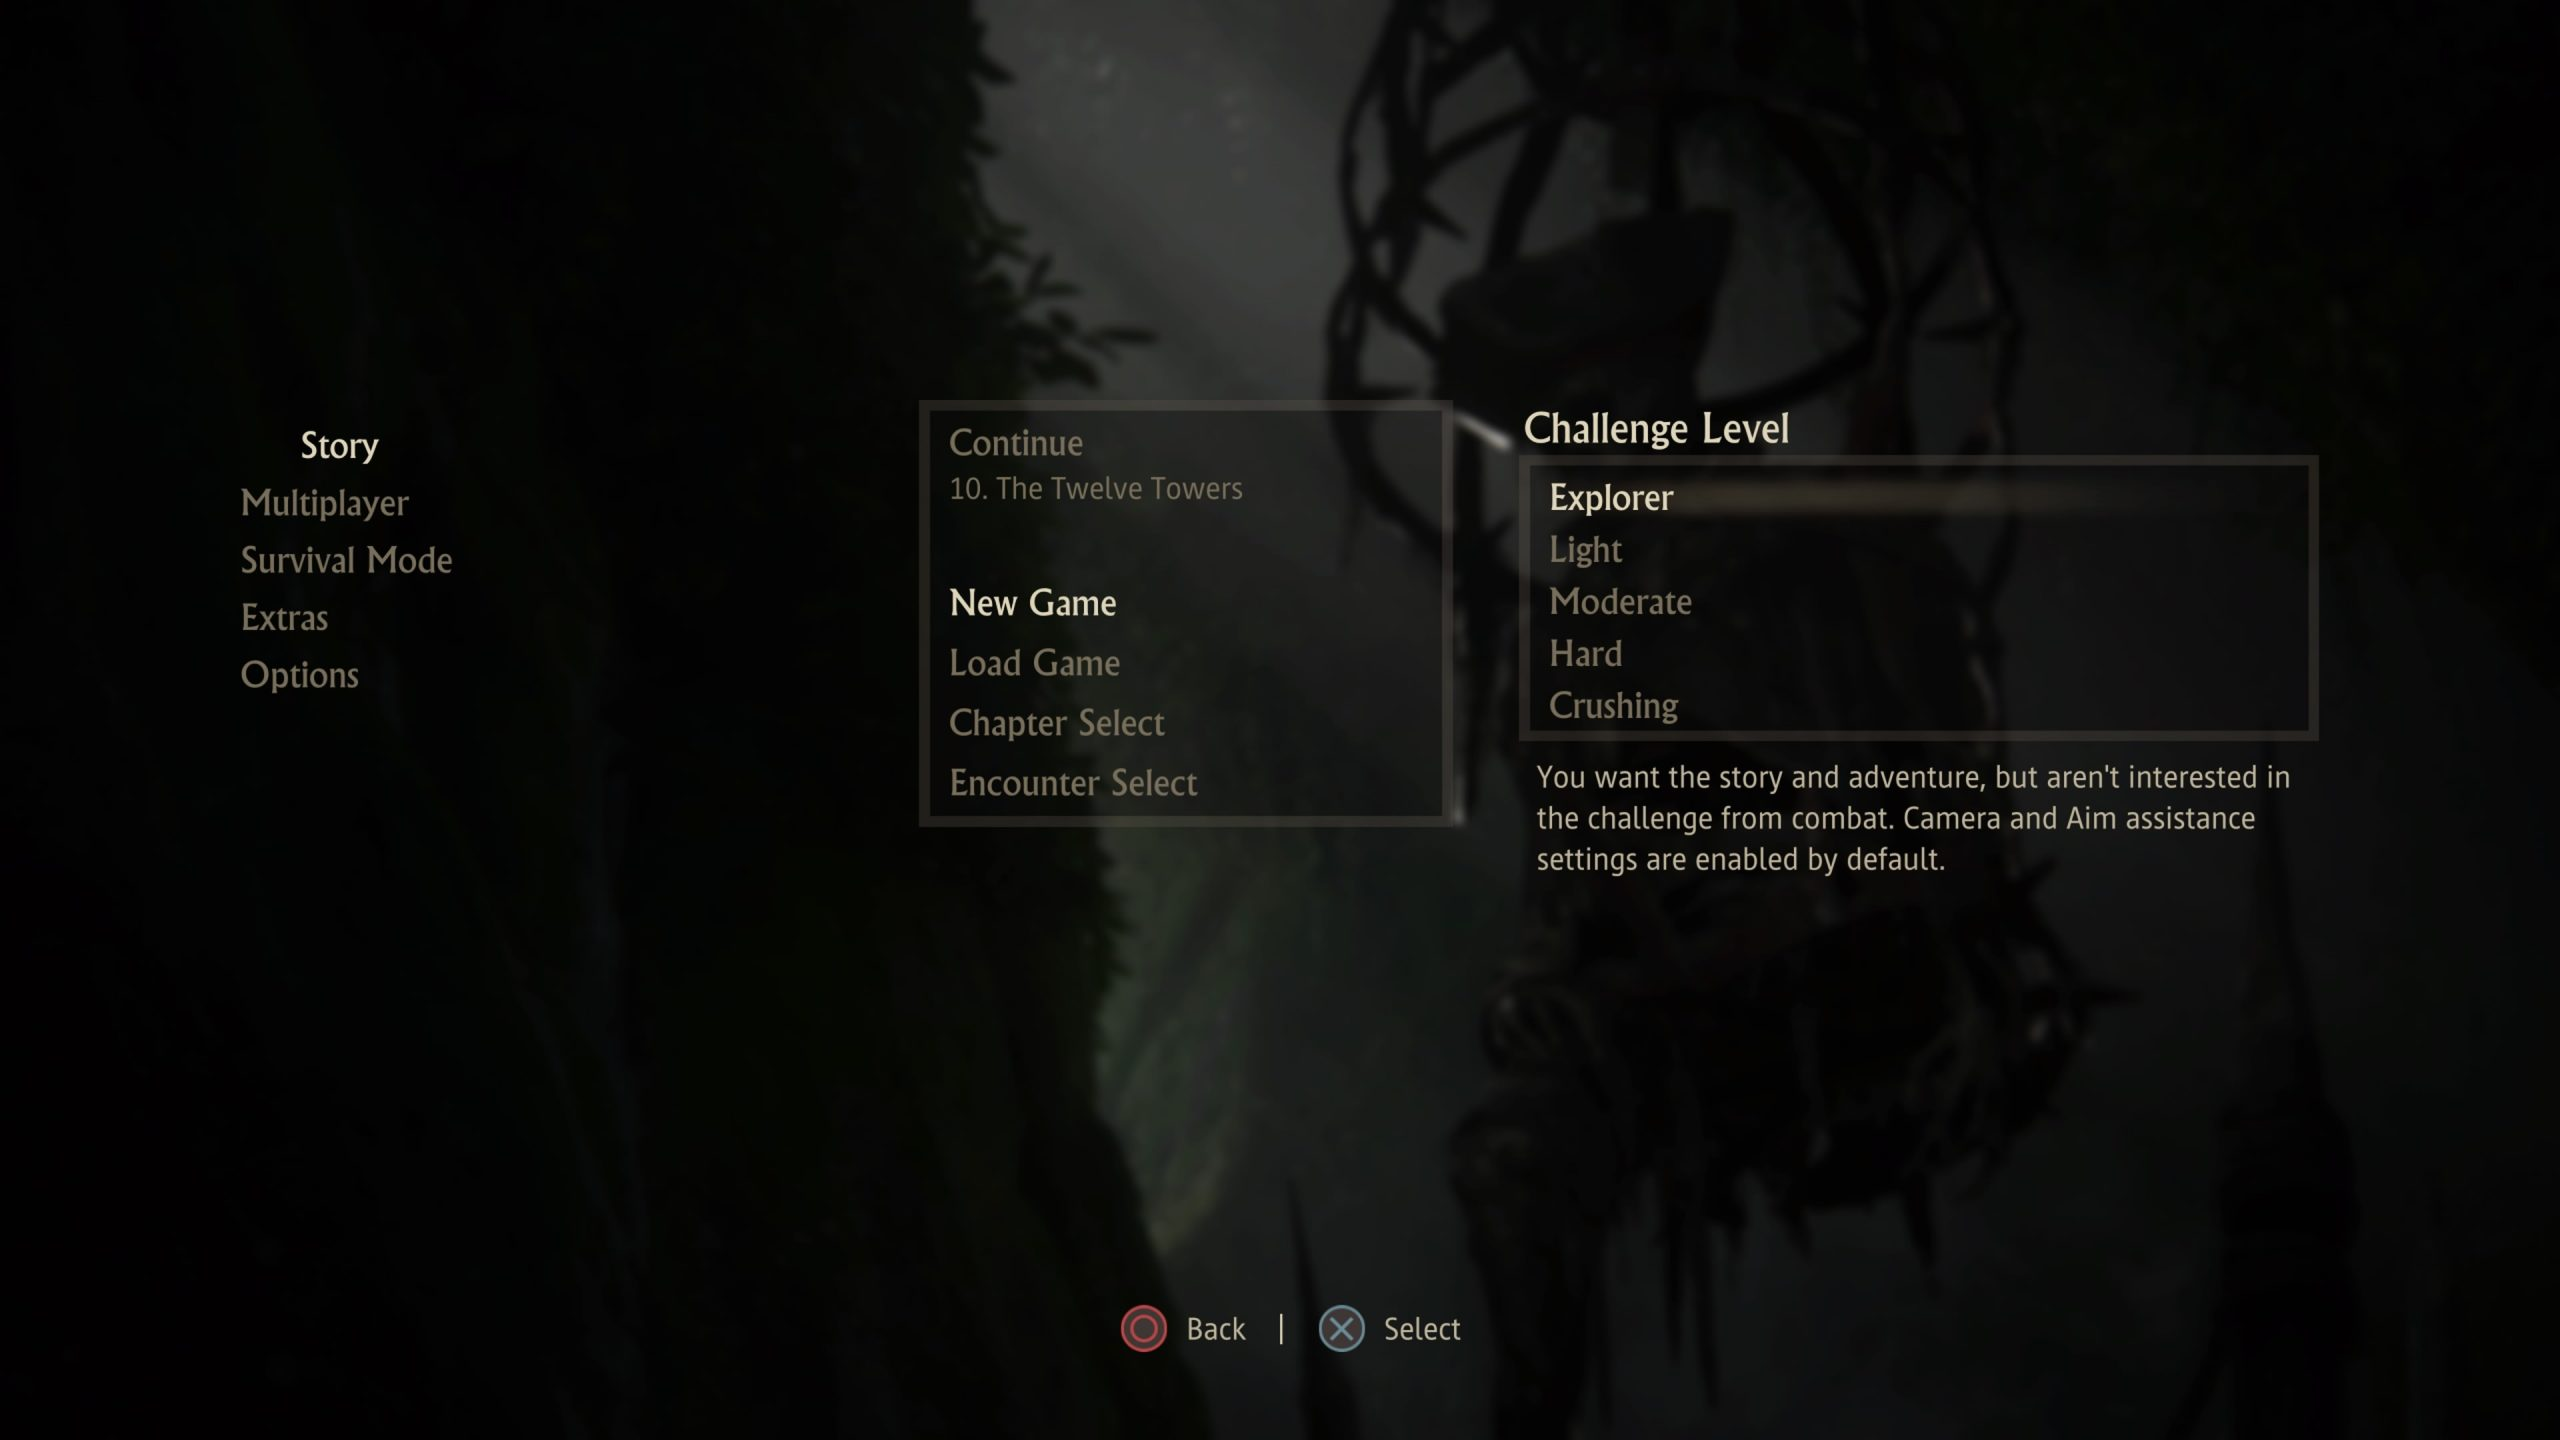 Screenshot of the difficulty menu when starting a new game